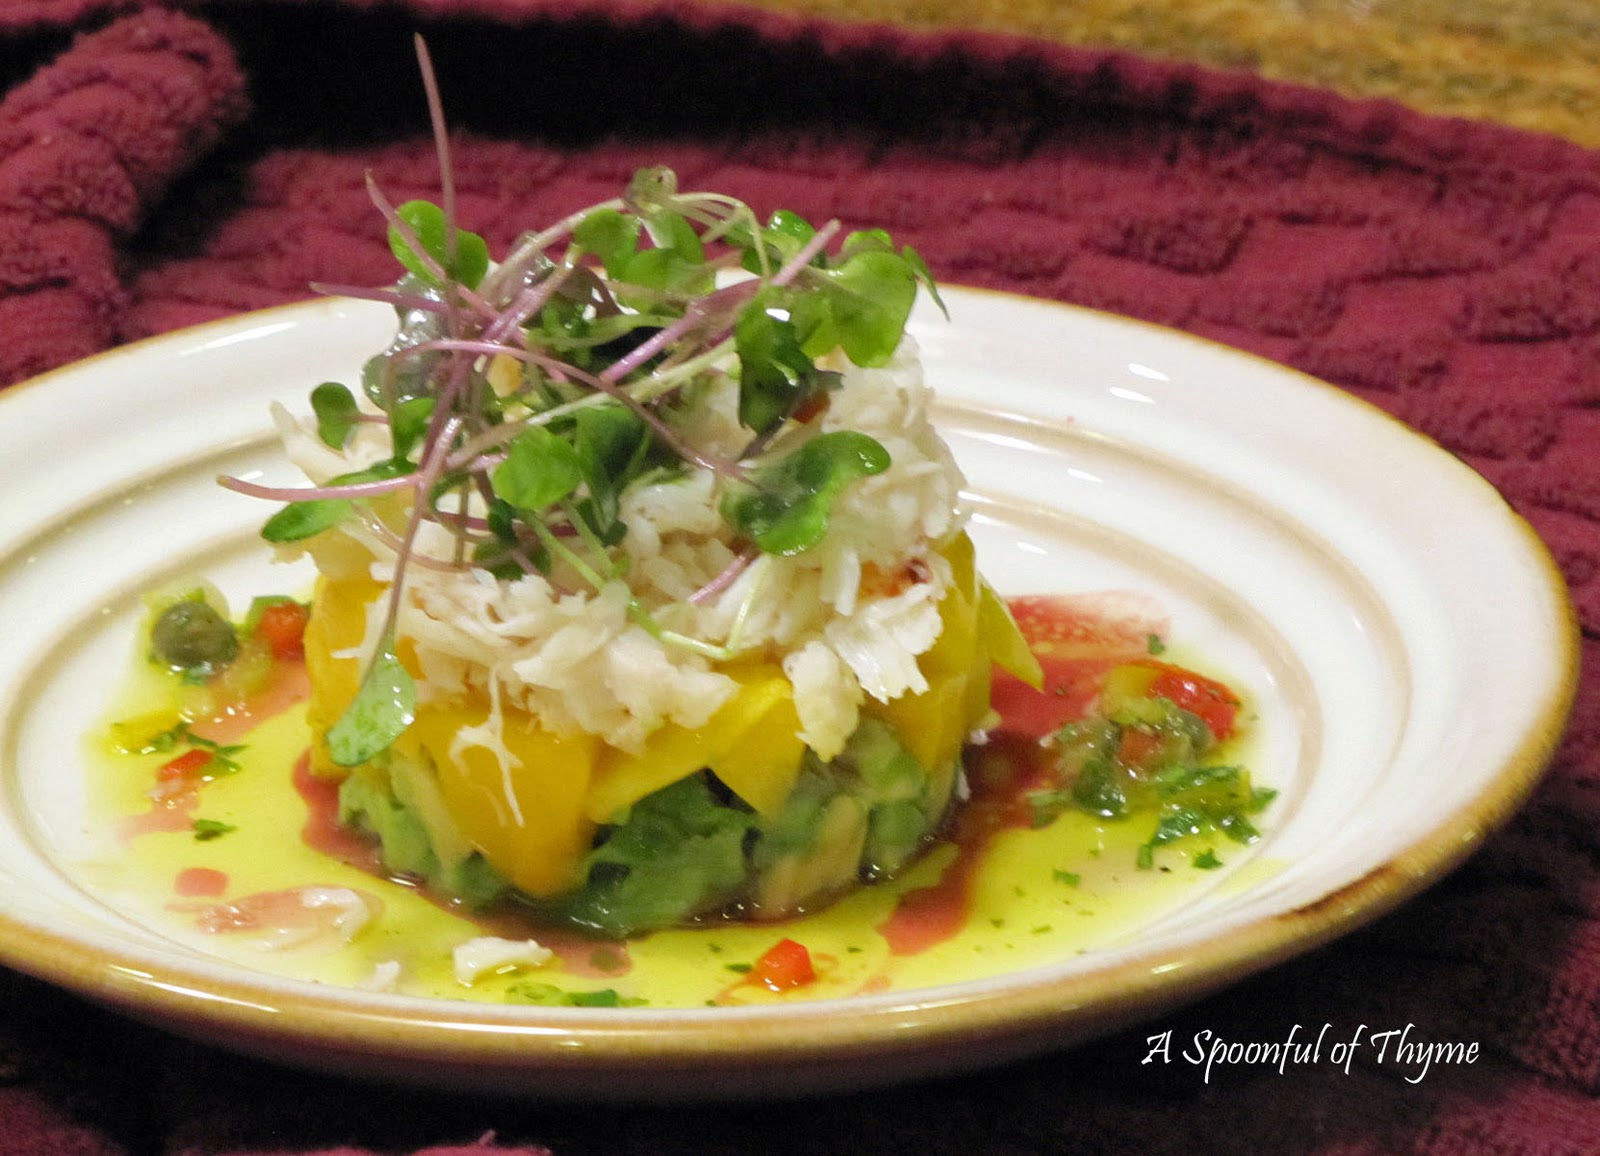 Spoonful of Thyme: Crab, Mango and Avocado Towers